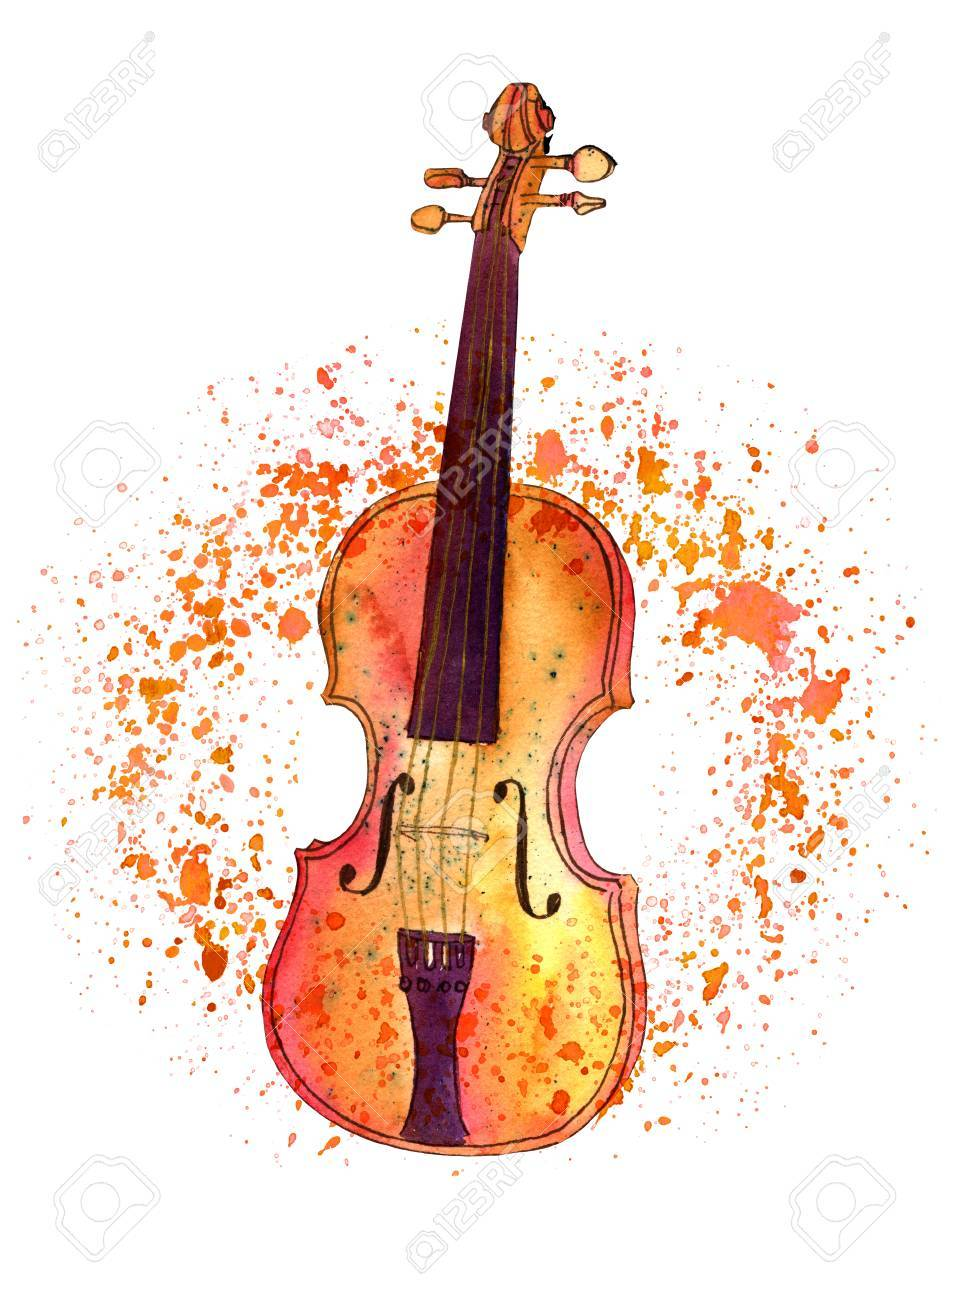 Watercolour Drawing Of Violin With Paint Splashes And Copyspace